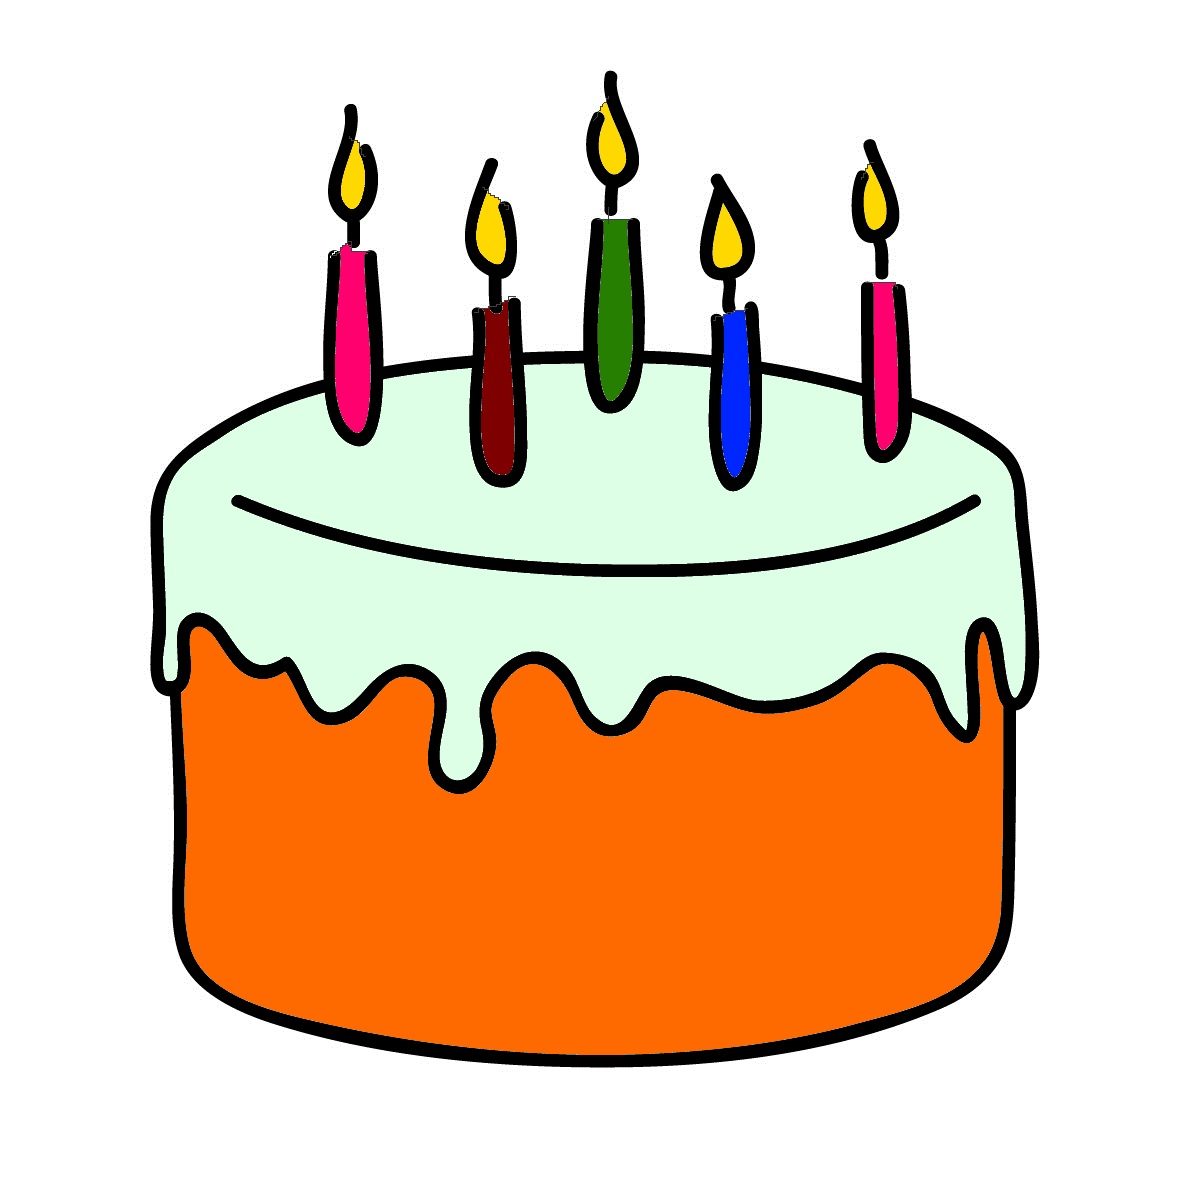 hight resolution of birthday cake clipart pie clipart candles cake hq photo